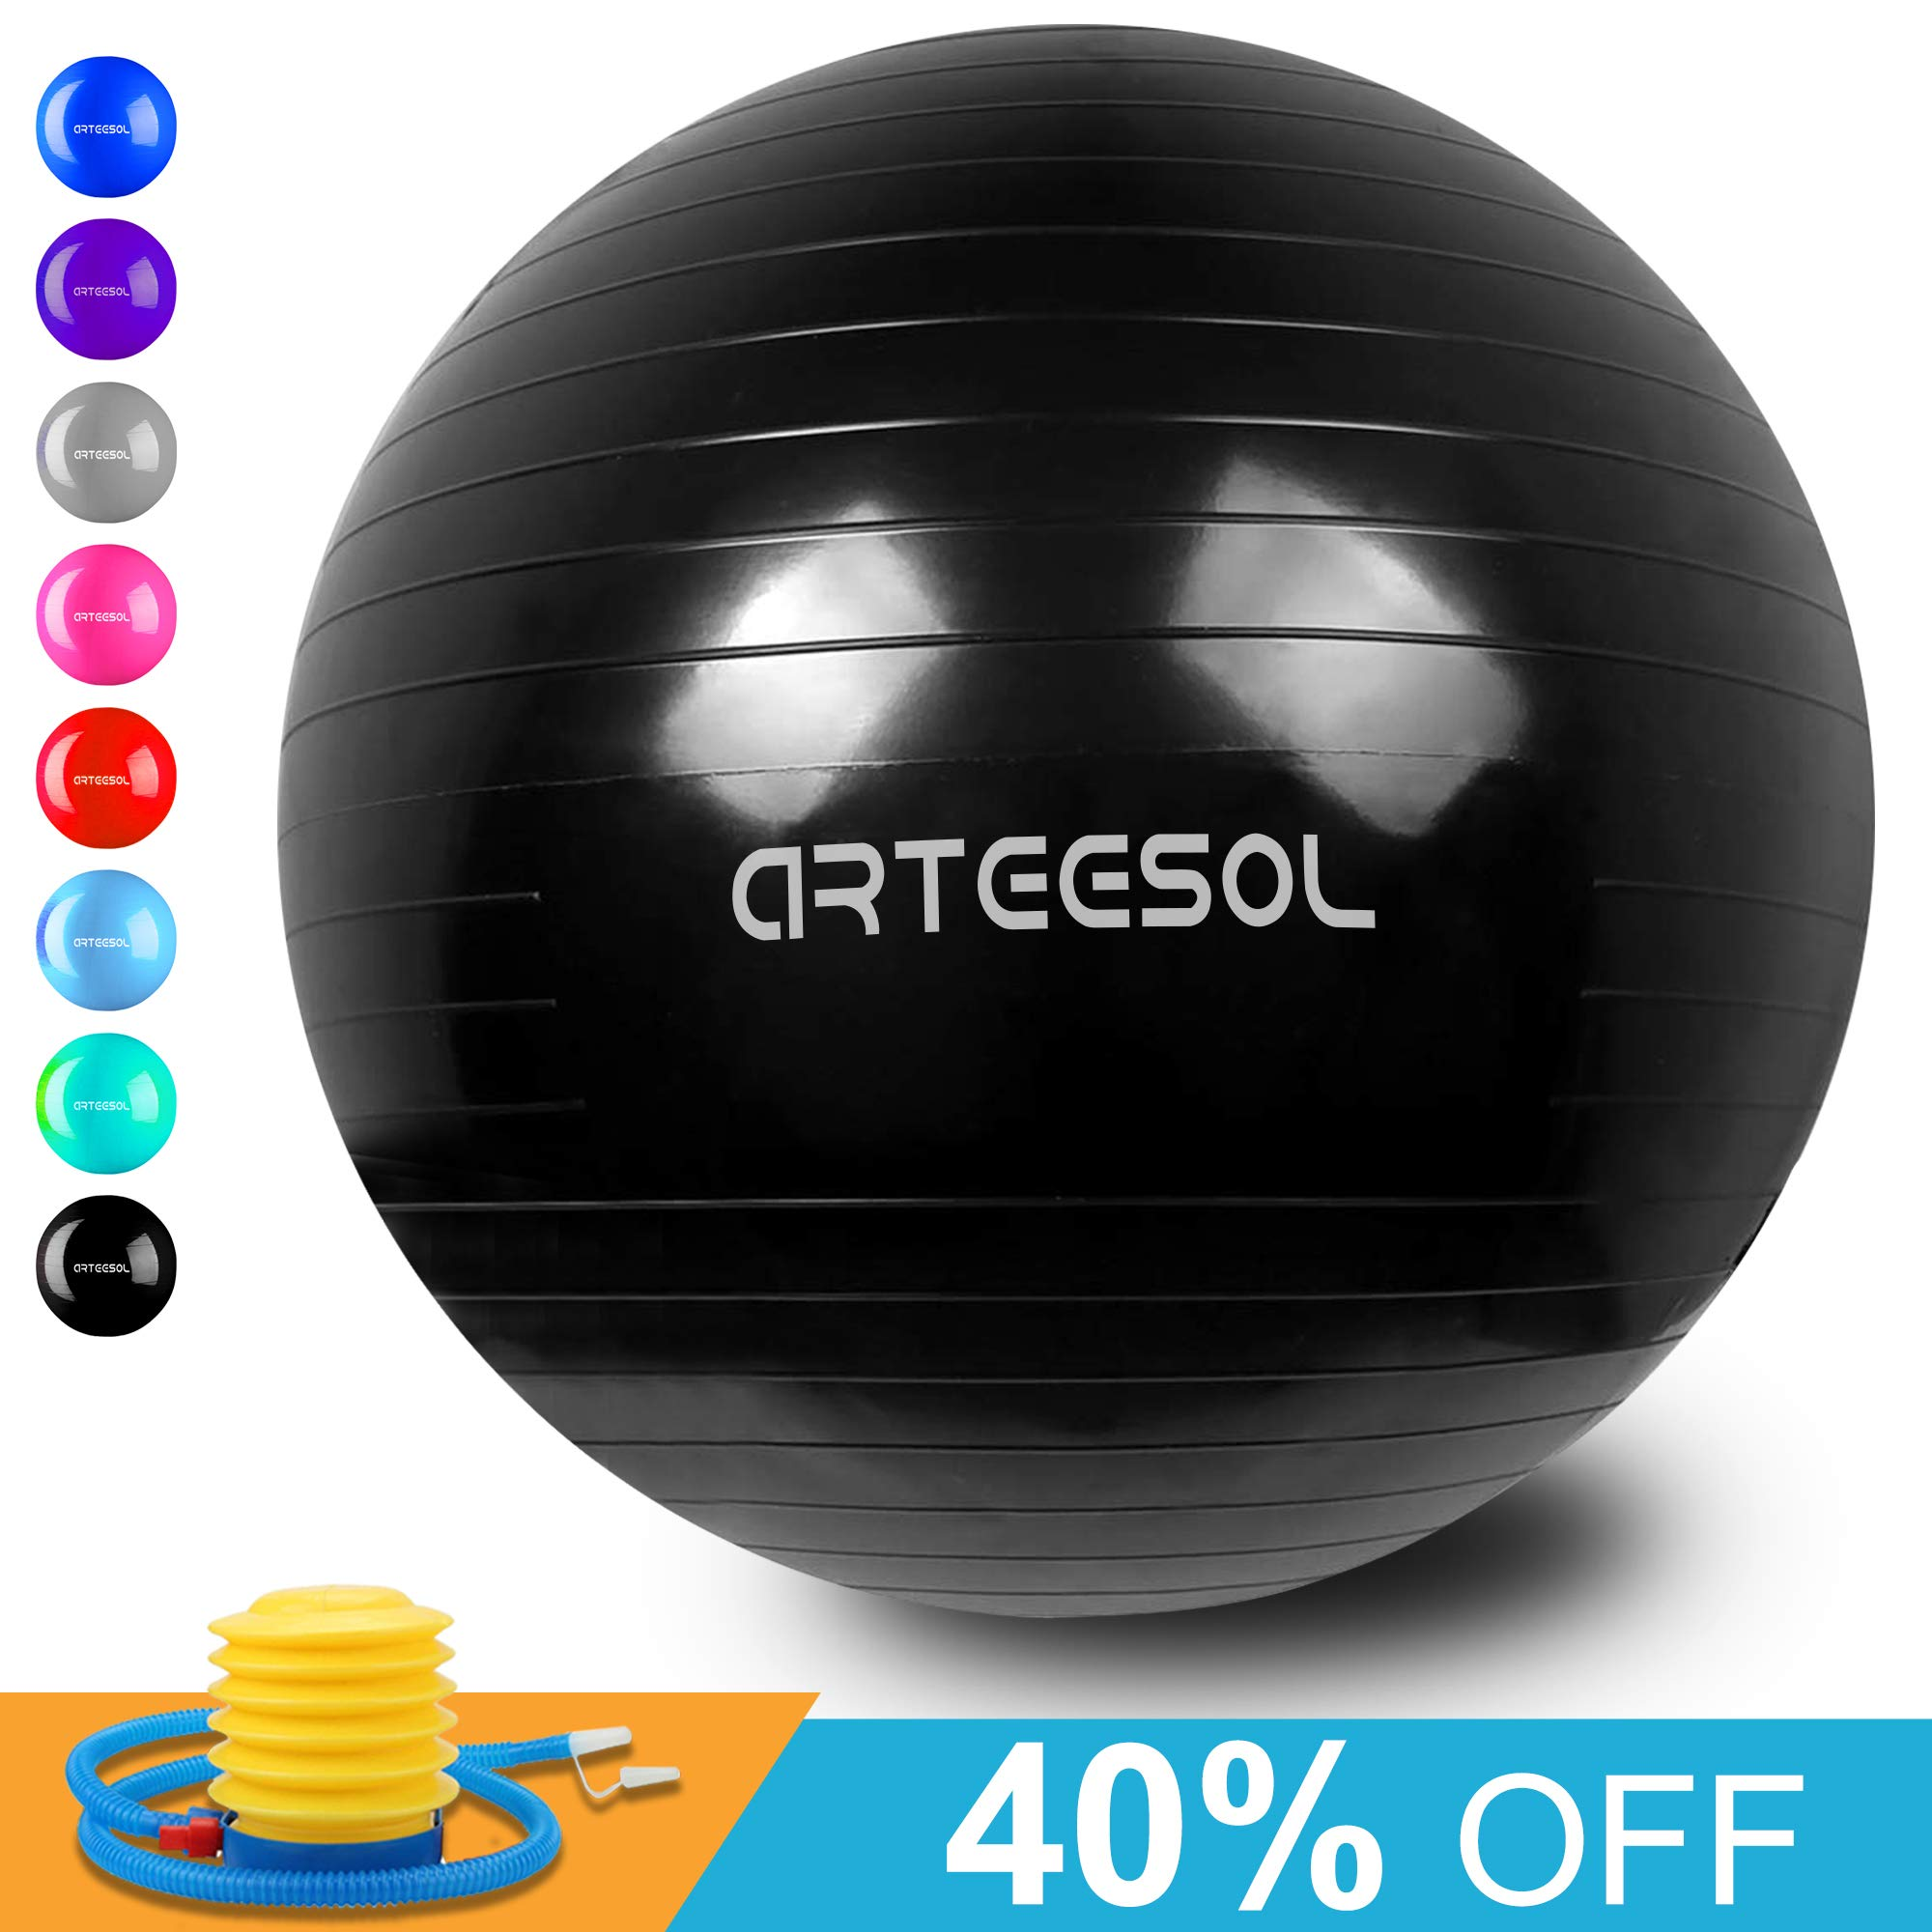 arteesol Exercise Yoga Ball, Extra Thick Stability Balance Ball (45-75cm), Professional Grade Anti Burst&Slip Resistant Balance, Fitness&Physical Therapy, Birthing Ball with Air Pump (Black, 55cm)